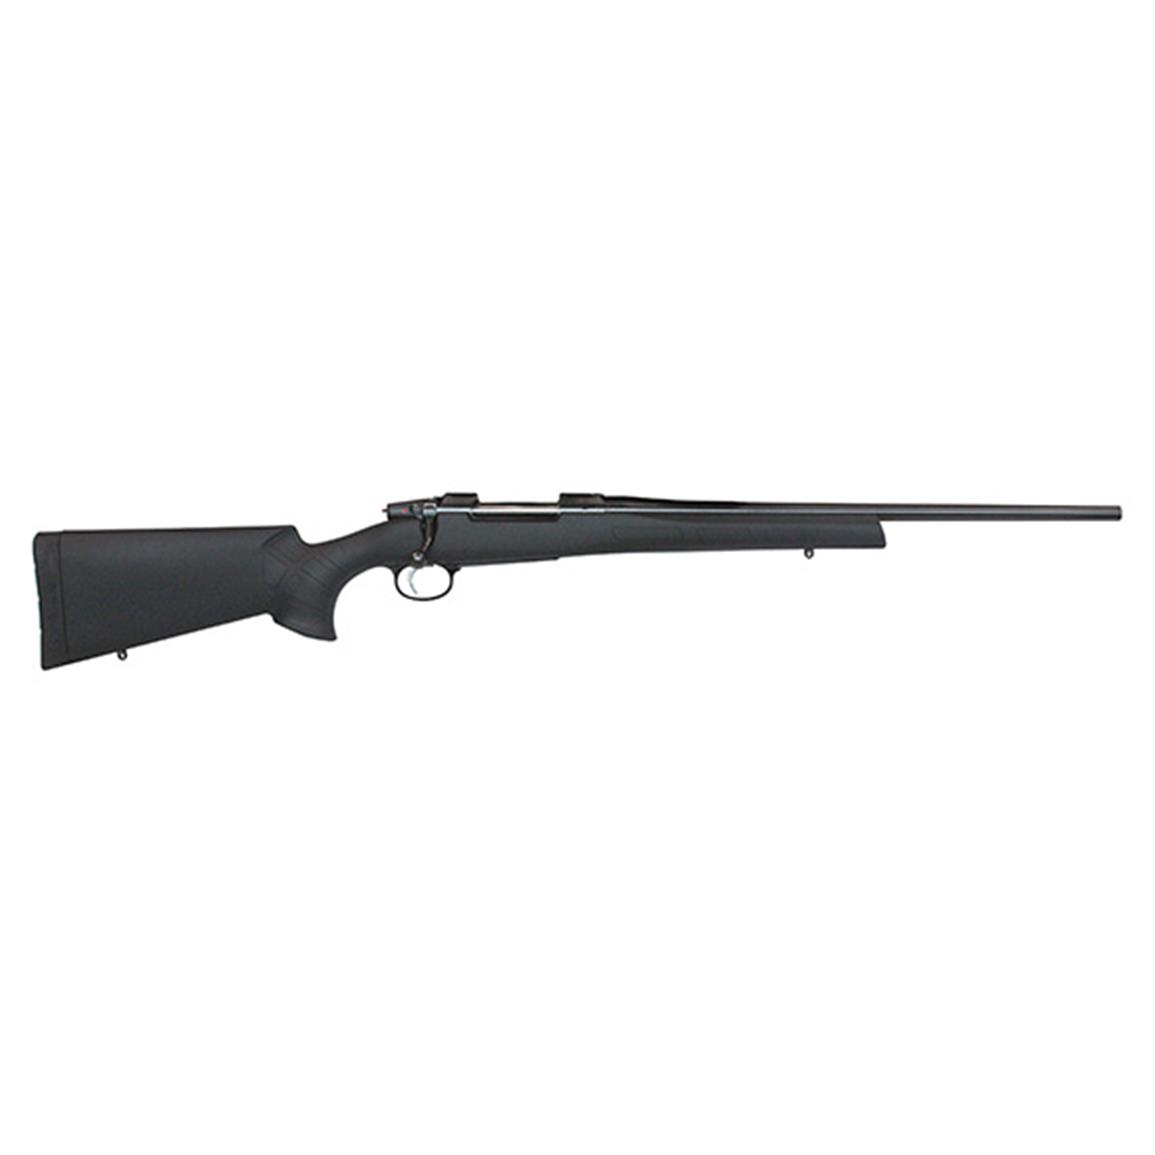 "CZ-USA 557 Sporter Synthetic, Bolt Action, .270 Winchester, Centerfire, 20.5"" Barrel, 4 Rounds"